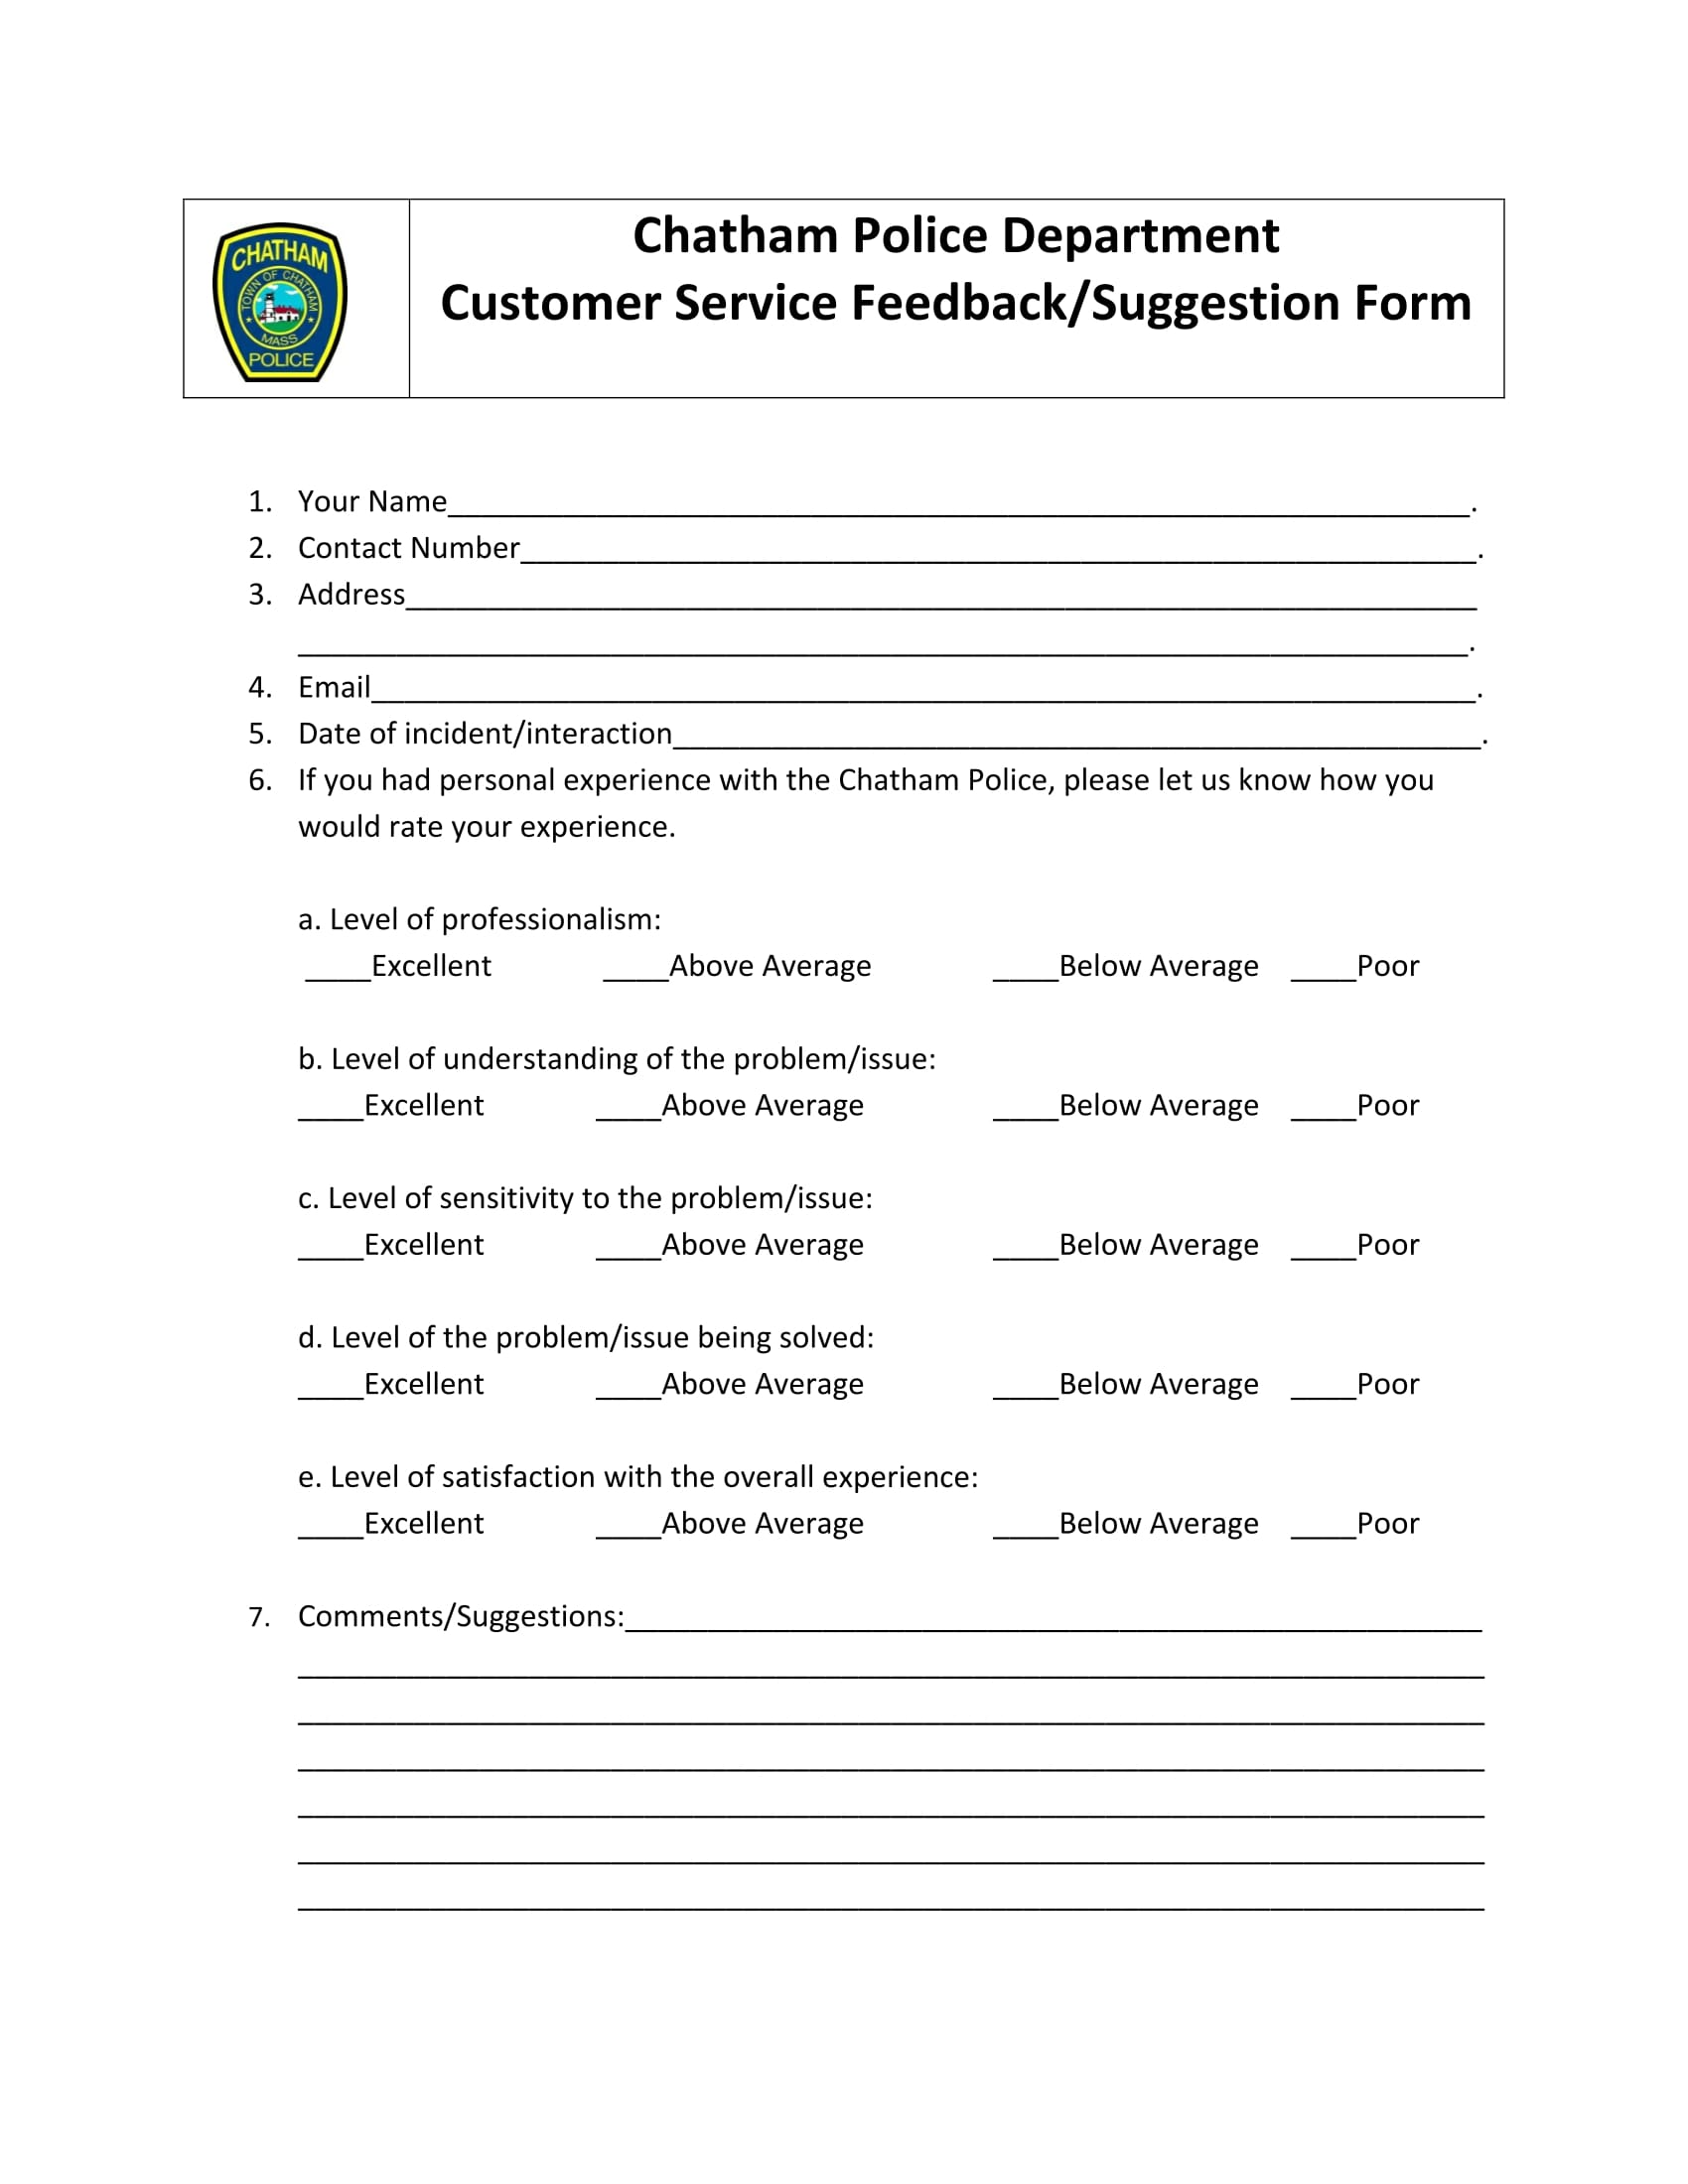 customer service feedback form 1